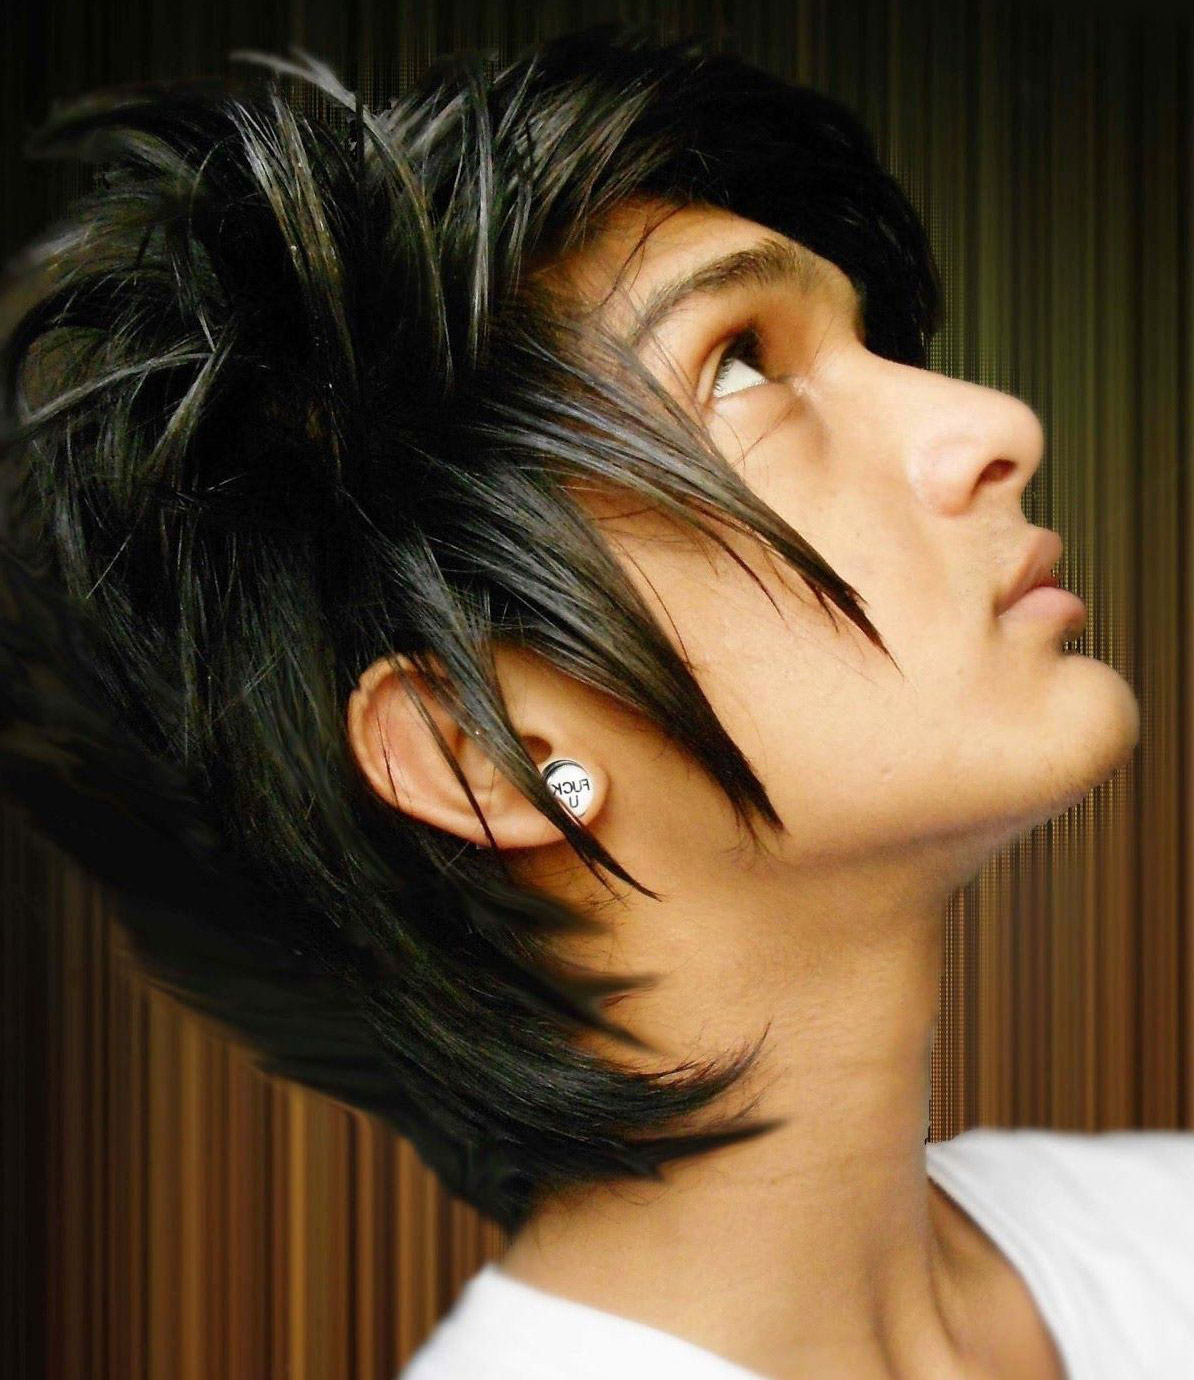 BOYS HAIR STYLISH DESIGN IMAGES PHOTO PICS DOWNLOAD